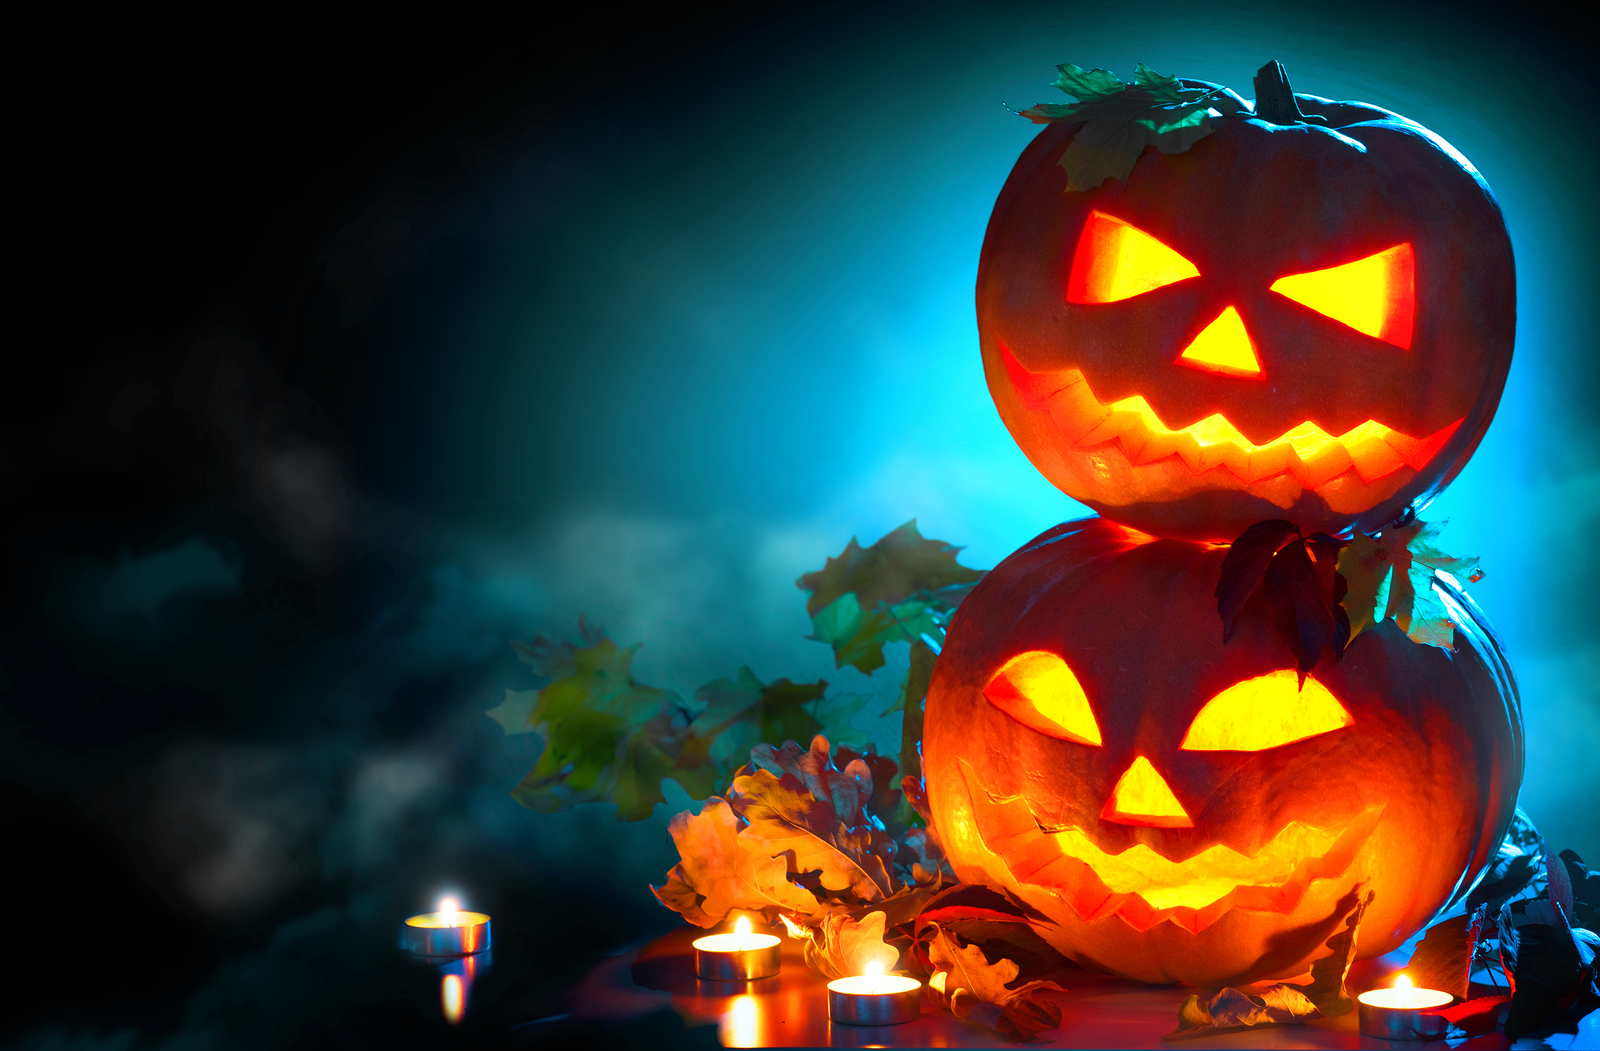 Top 3 Places For A Spooky Holiday This Halloween